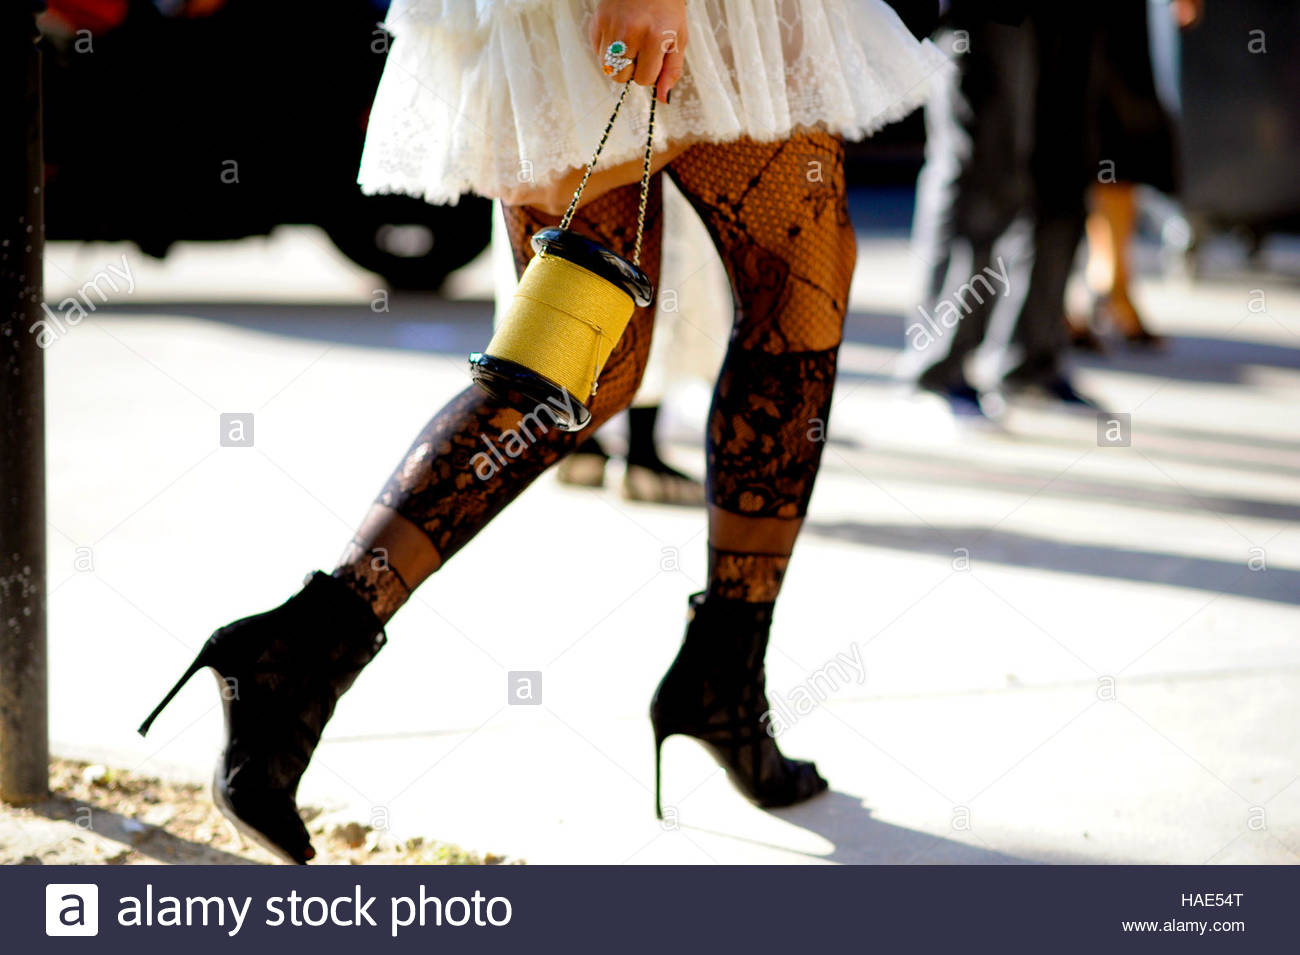 Detail of woman arriving for Chanel at the Grand Palais, on Ave Winston Churchill. SS17 FW16 Street Style Paris. - Stock Image